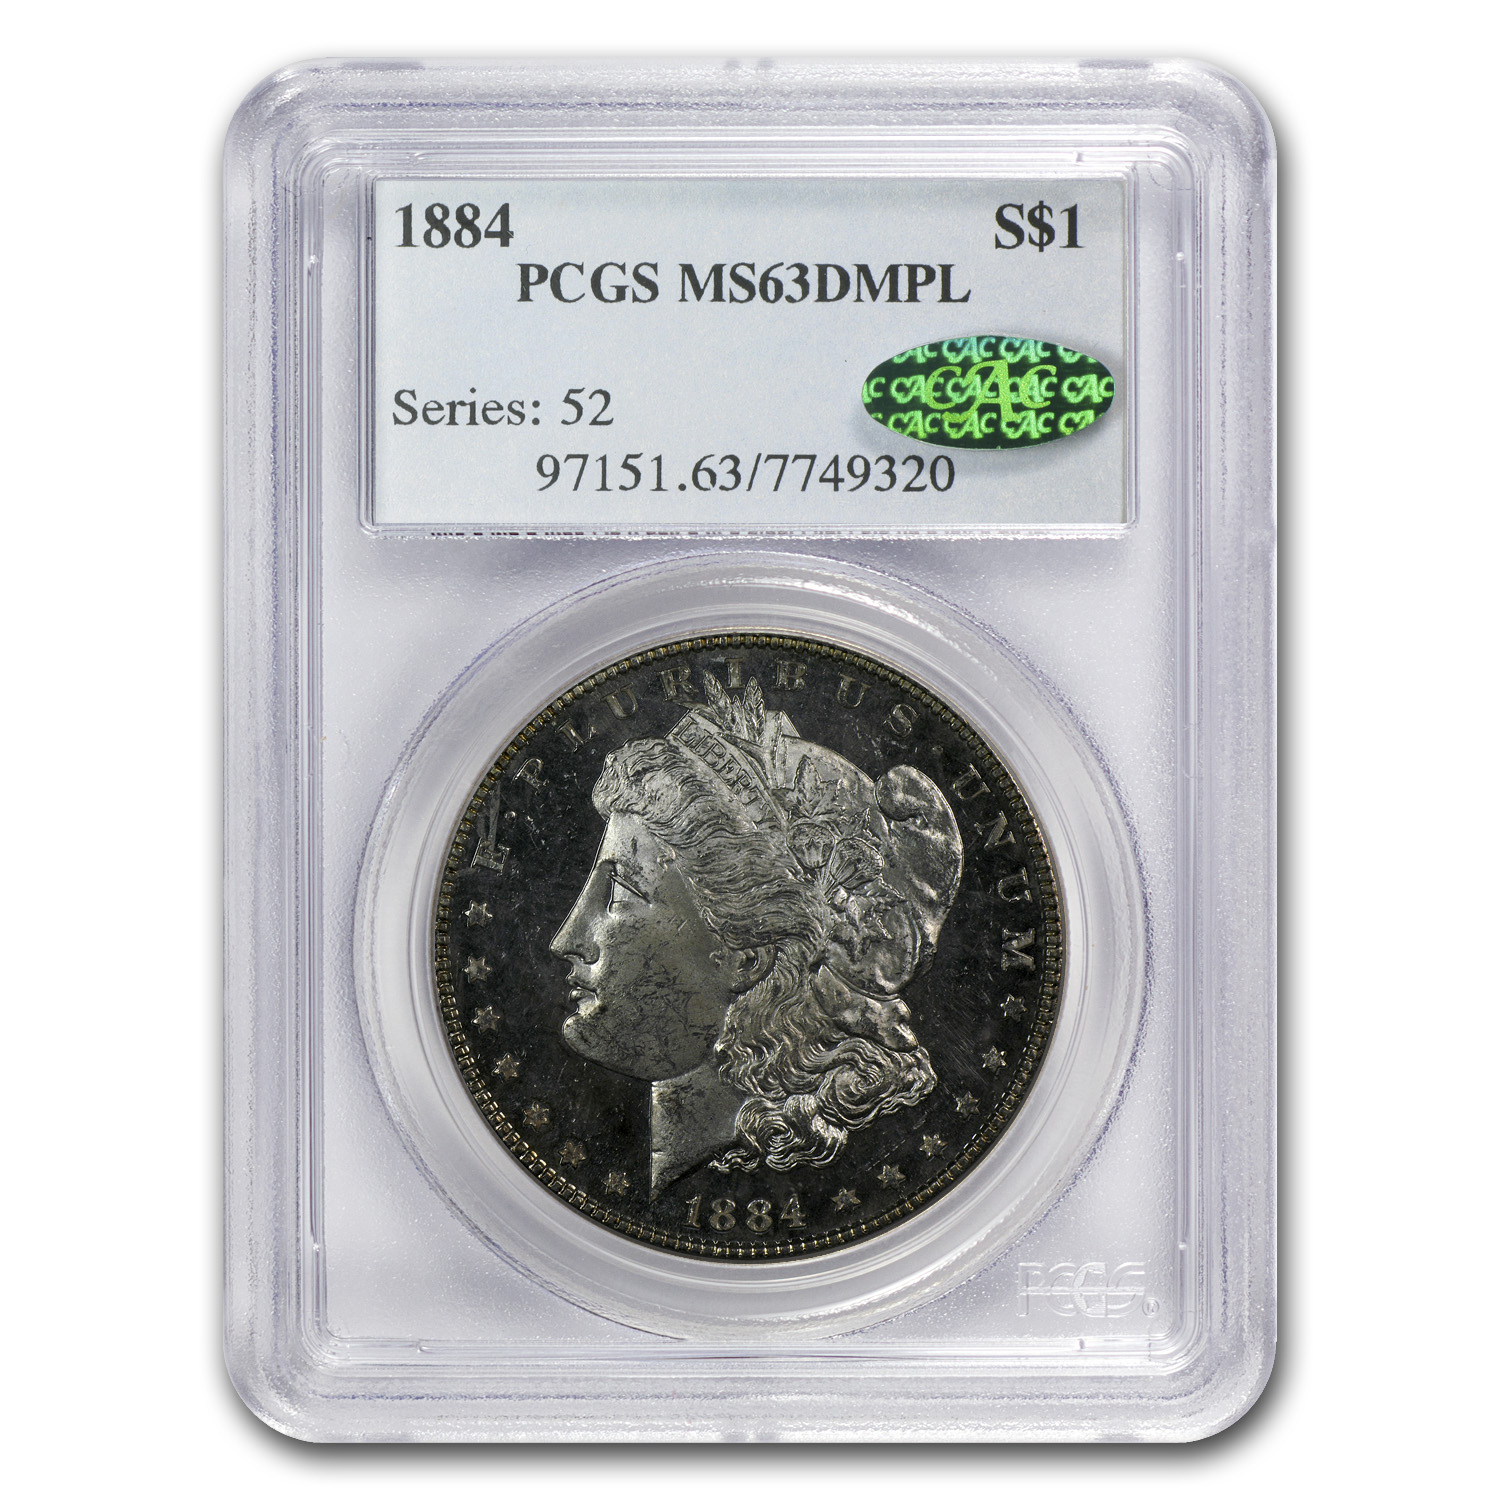 1884 Morgan Dollar - MS-63 DMPL Deep Mirror Proof Like PCGS - CAC